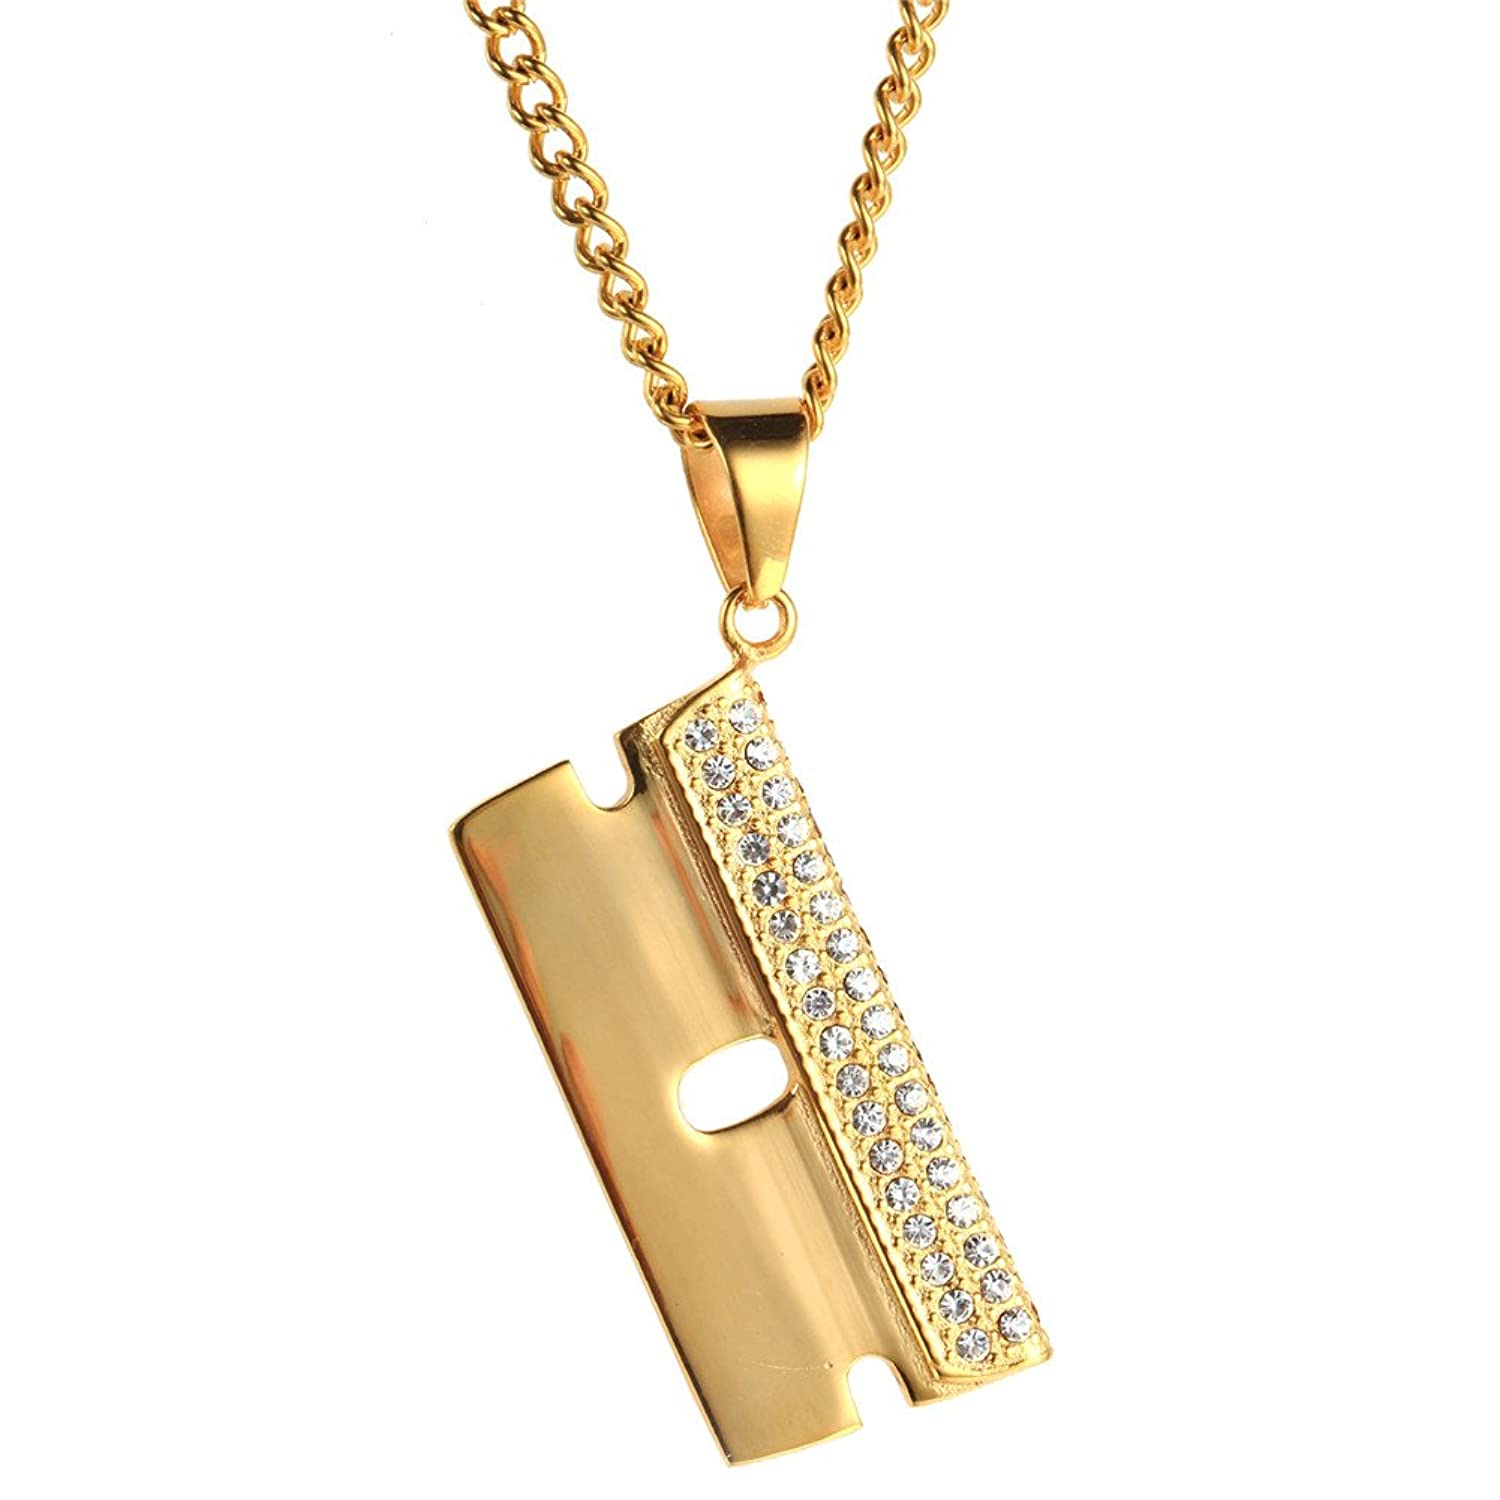 PAURO Men's Stainless Steel Gold Plated Hip Hop CZ Razor Blade Pendant Necklace with Cubic Zirconia